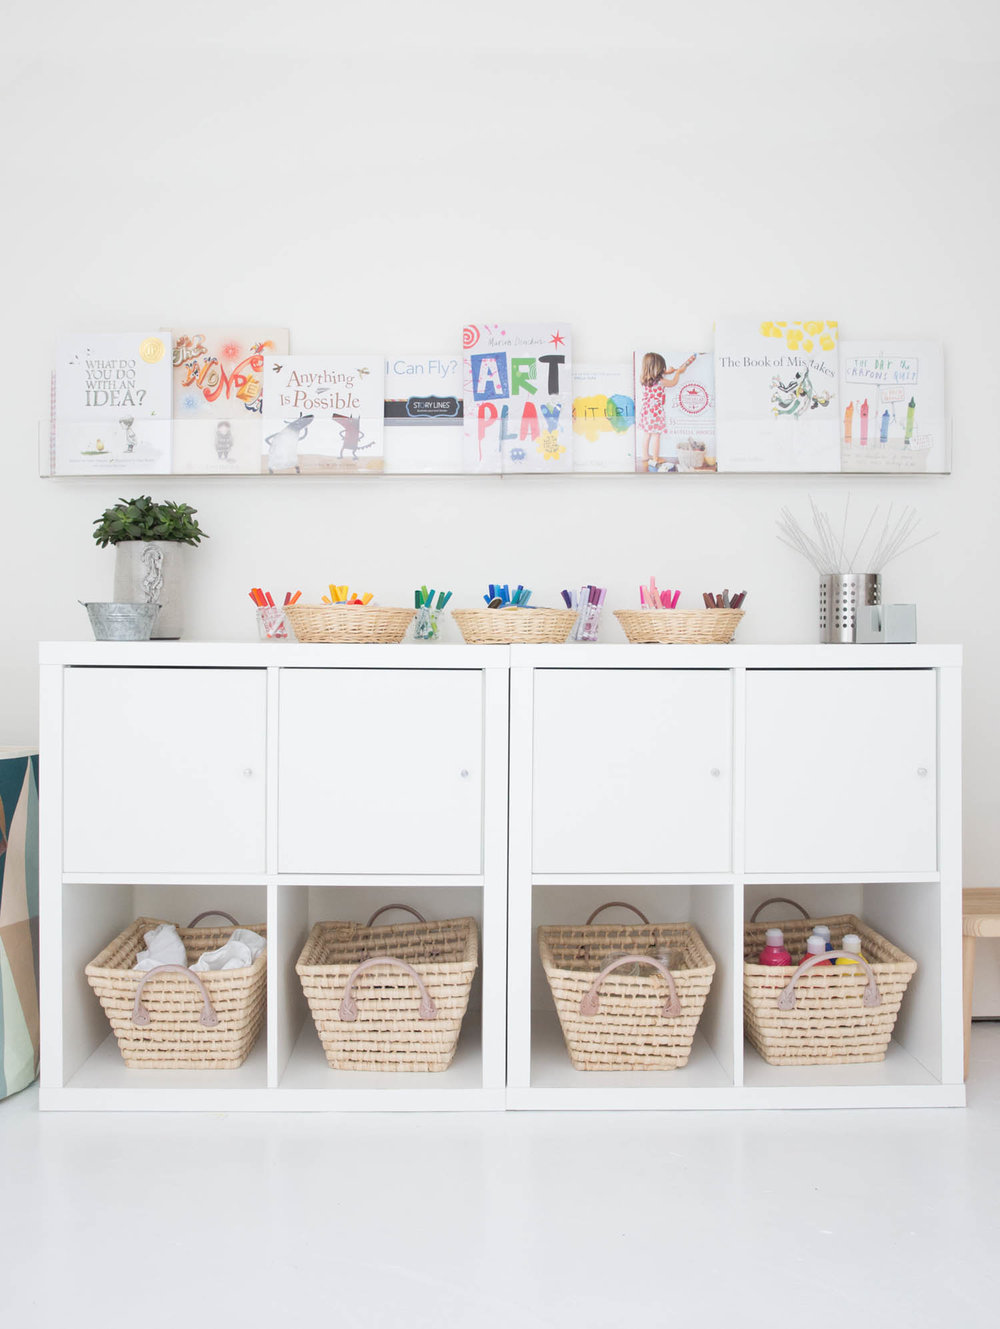 Children's art room books and shelving